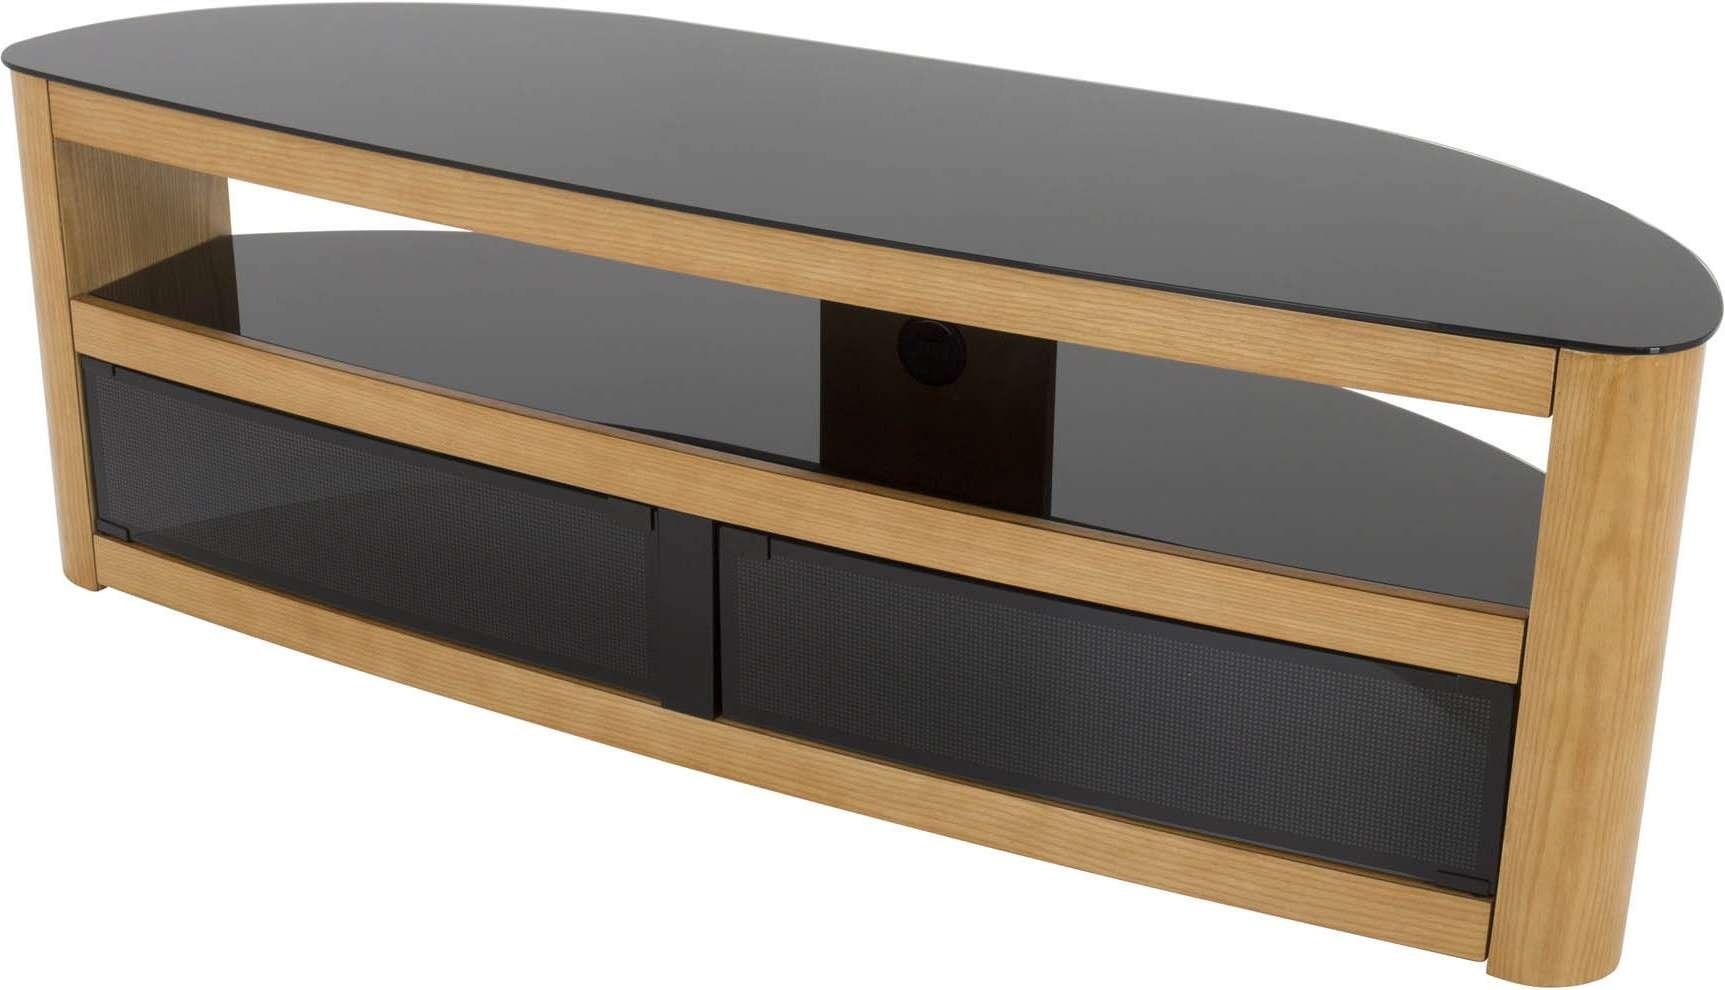 Avf Fs1500buro Tv Stands With Regard To Avf Tv Stands (View 9 of 15)